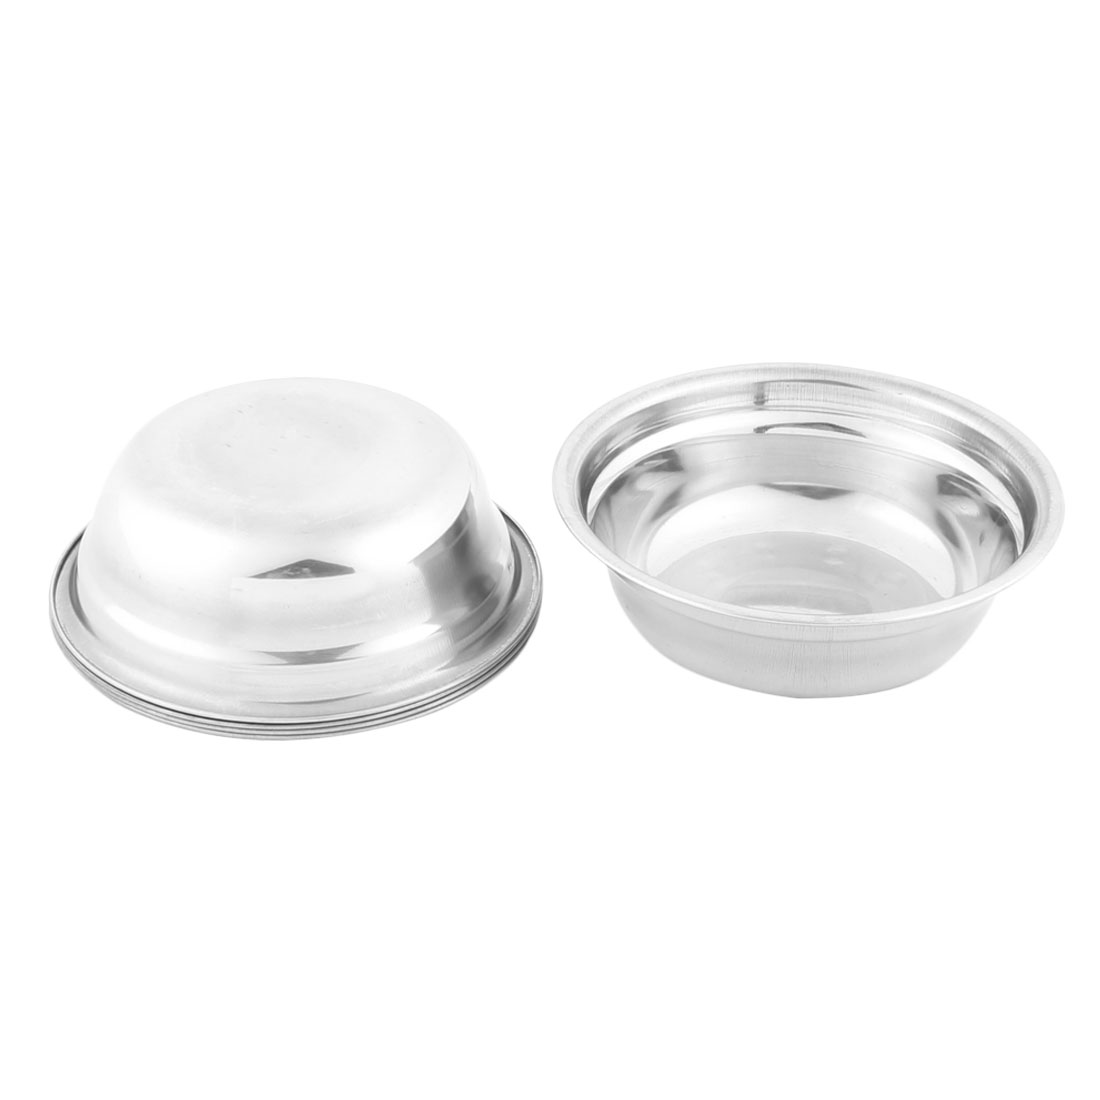 Home Tableware Stainless Steel Dinner Food Bowl Soup Basin 5.8 Inches Dia 5 Pcs